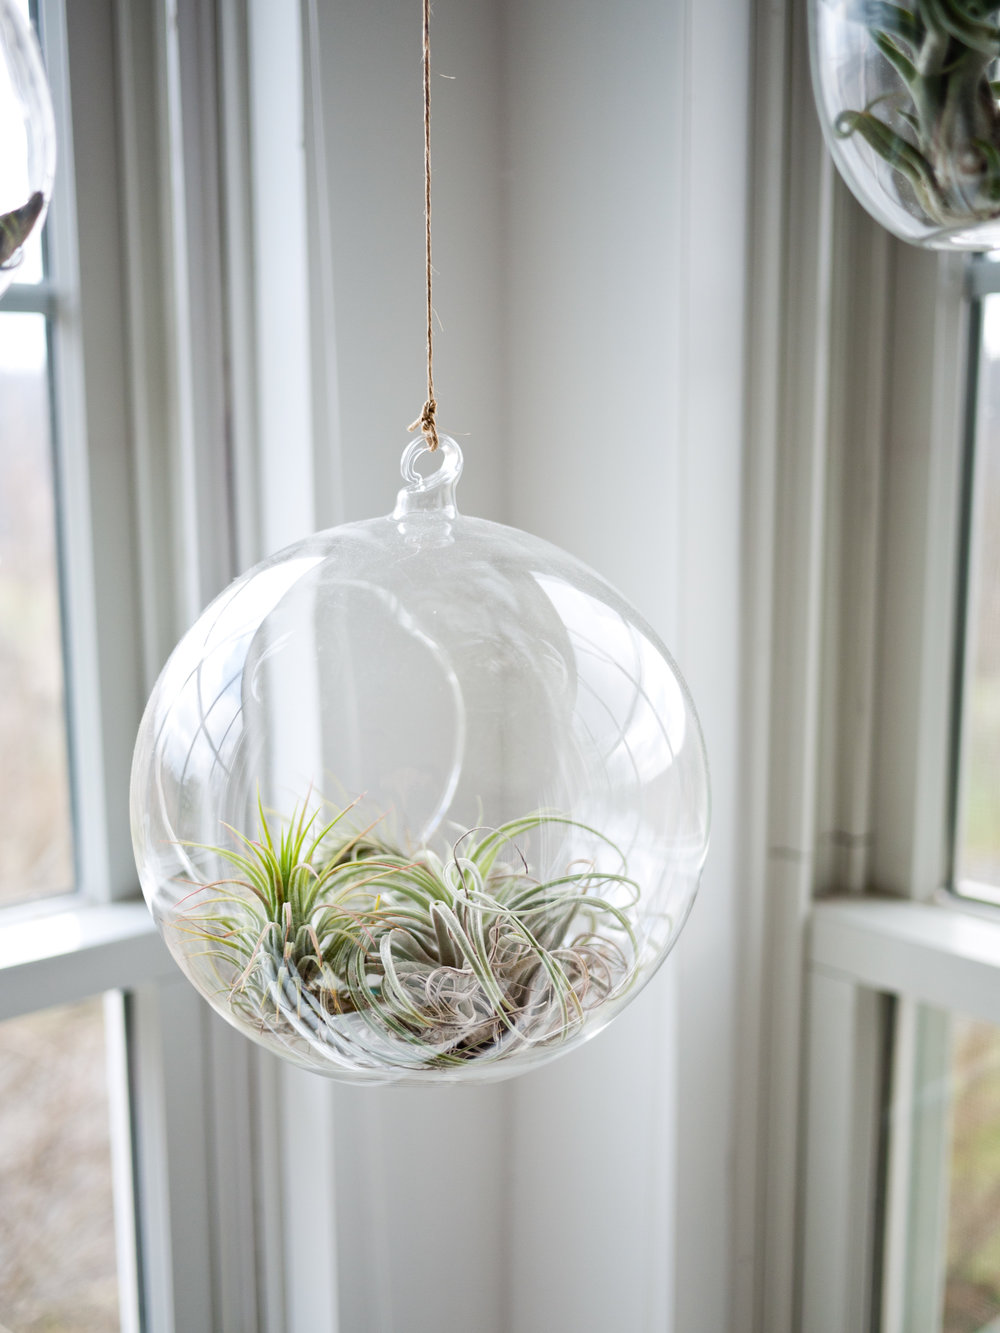 Local Home Decor Stores Part - 48: Youu0027d Be Able To Buy These Glass Orbs At Your Local Home Decor Store Or  Gift Shop. Alternatively, You Can Also Purchase Them Online Through Amazon.